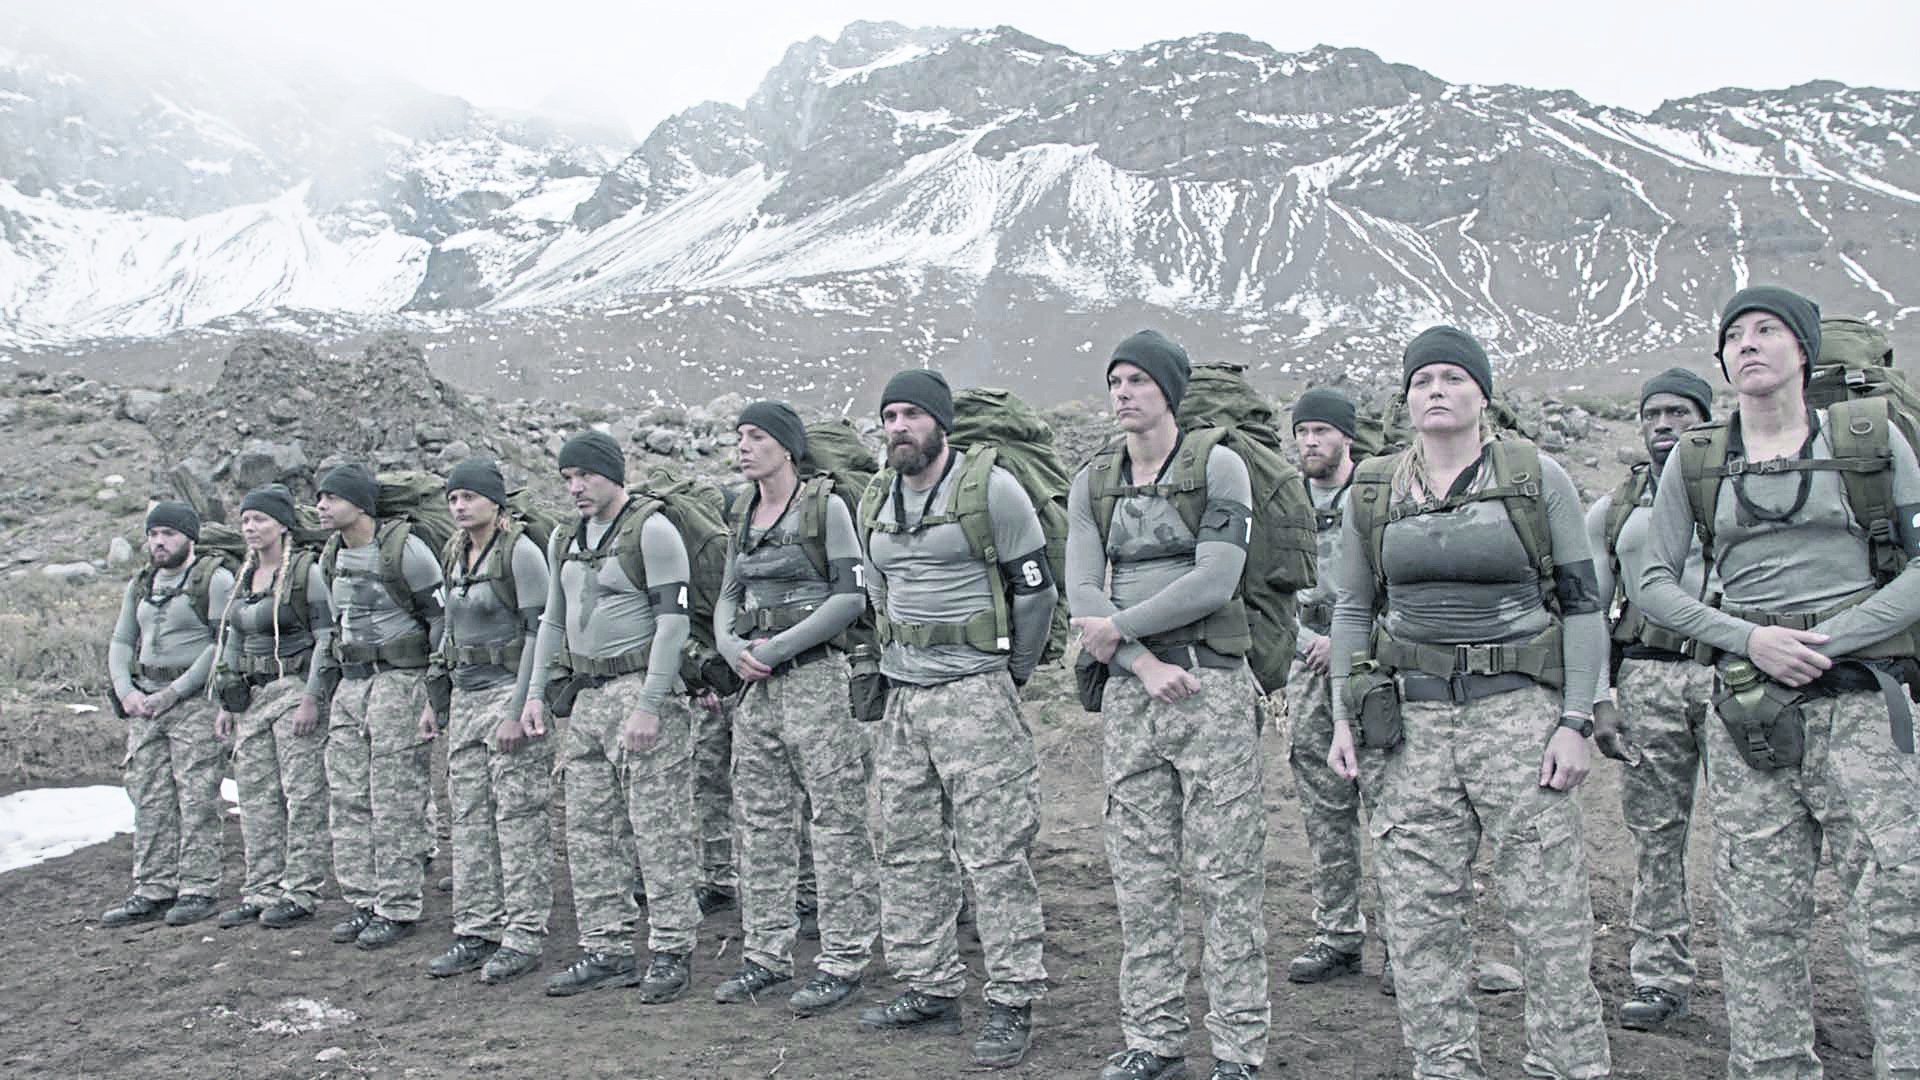 Louise McCullough and other members of the group of the C4 show Who Dares Wins. Cameron, Sharissa, Nathaniel, Kat, Stacy, Vicki, Mark, Julie, Rick, Nadine, Sam, Tracey